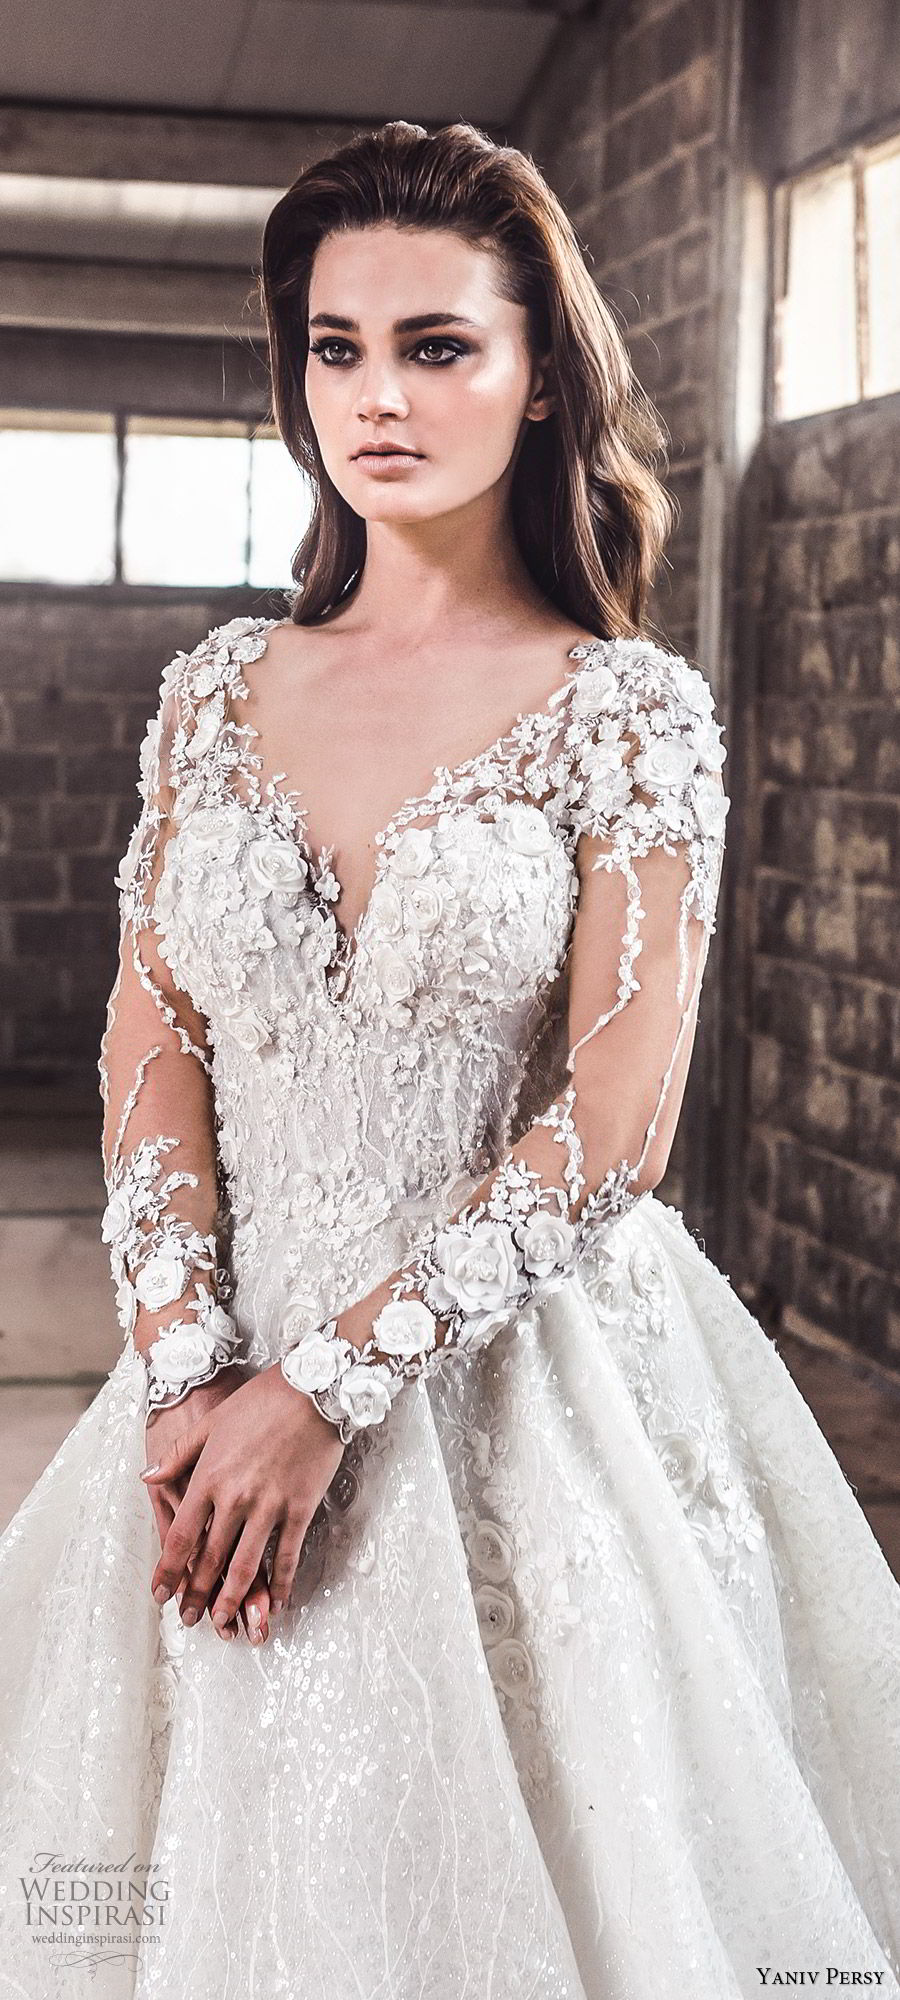 yaniv persy spring 2020 bridal couture illusion long sleeves sheer v neck sweetheart neckline heavily embellished a line ball gown wedding dress (1) cathedral train romantic zv